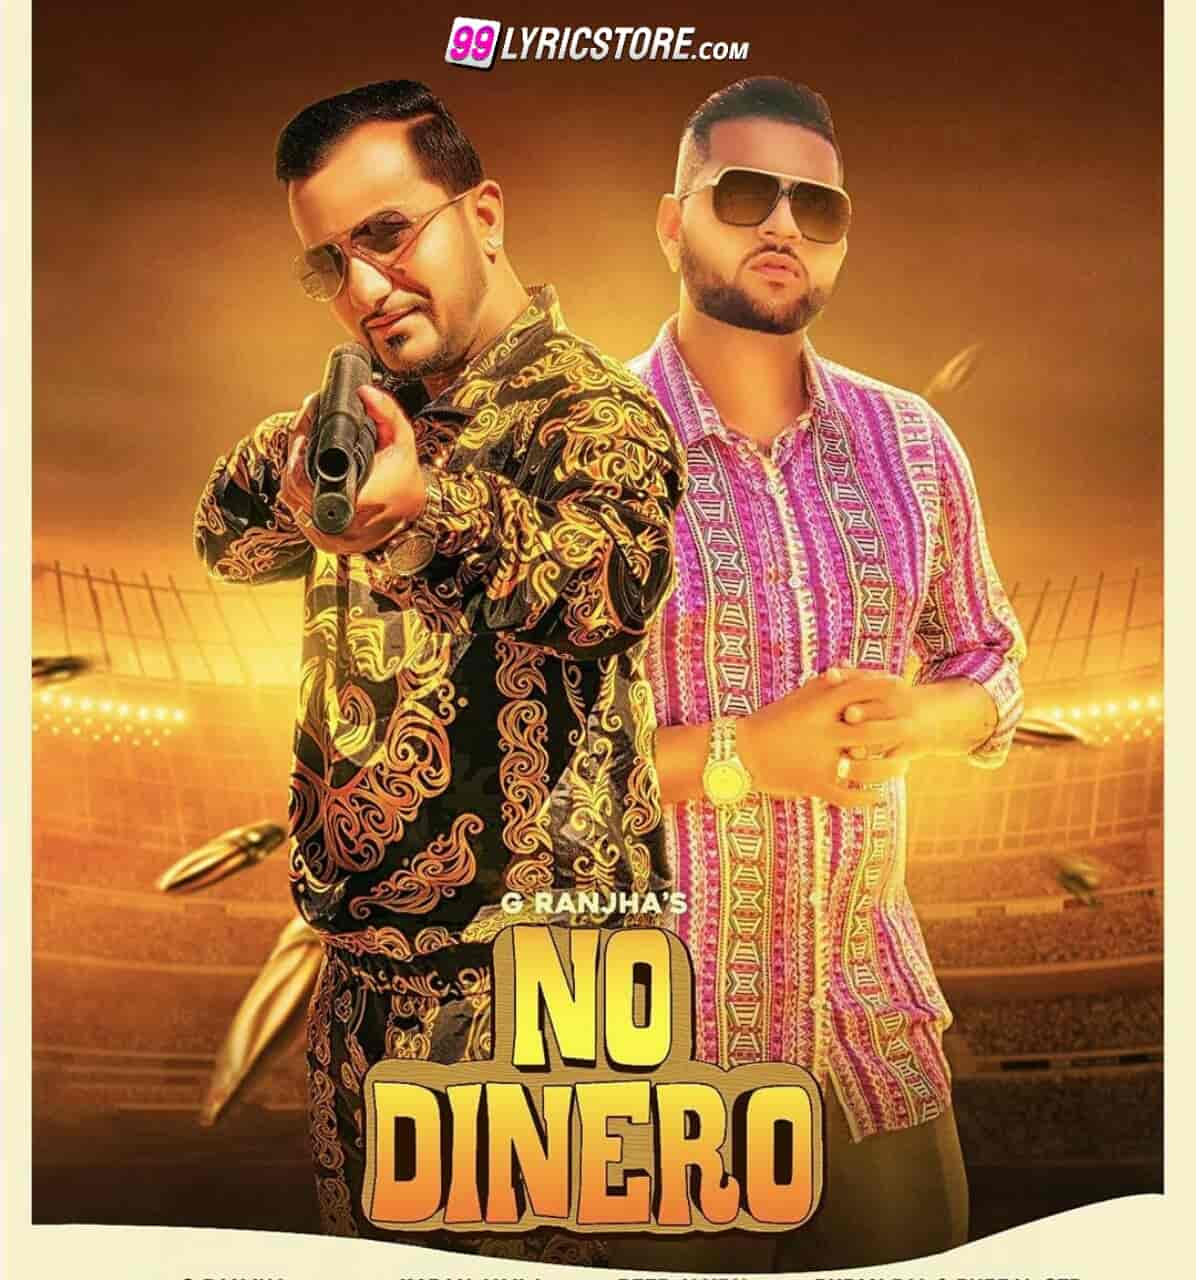 No dinero punjabi song lyrics sung by G RANJHA